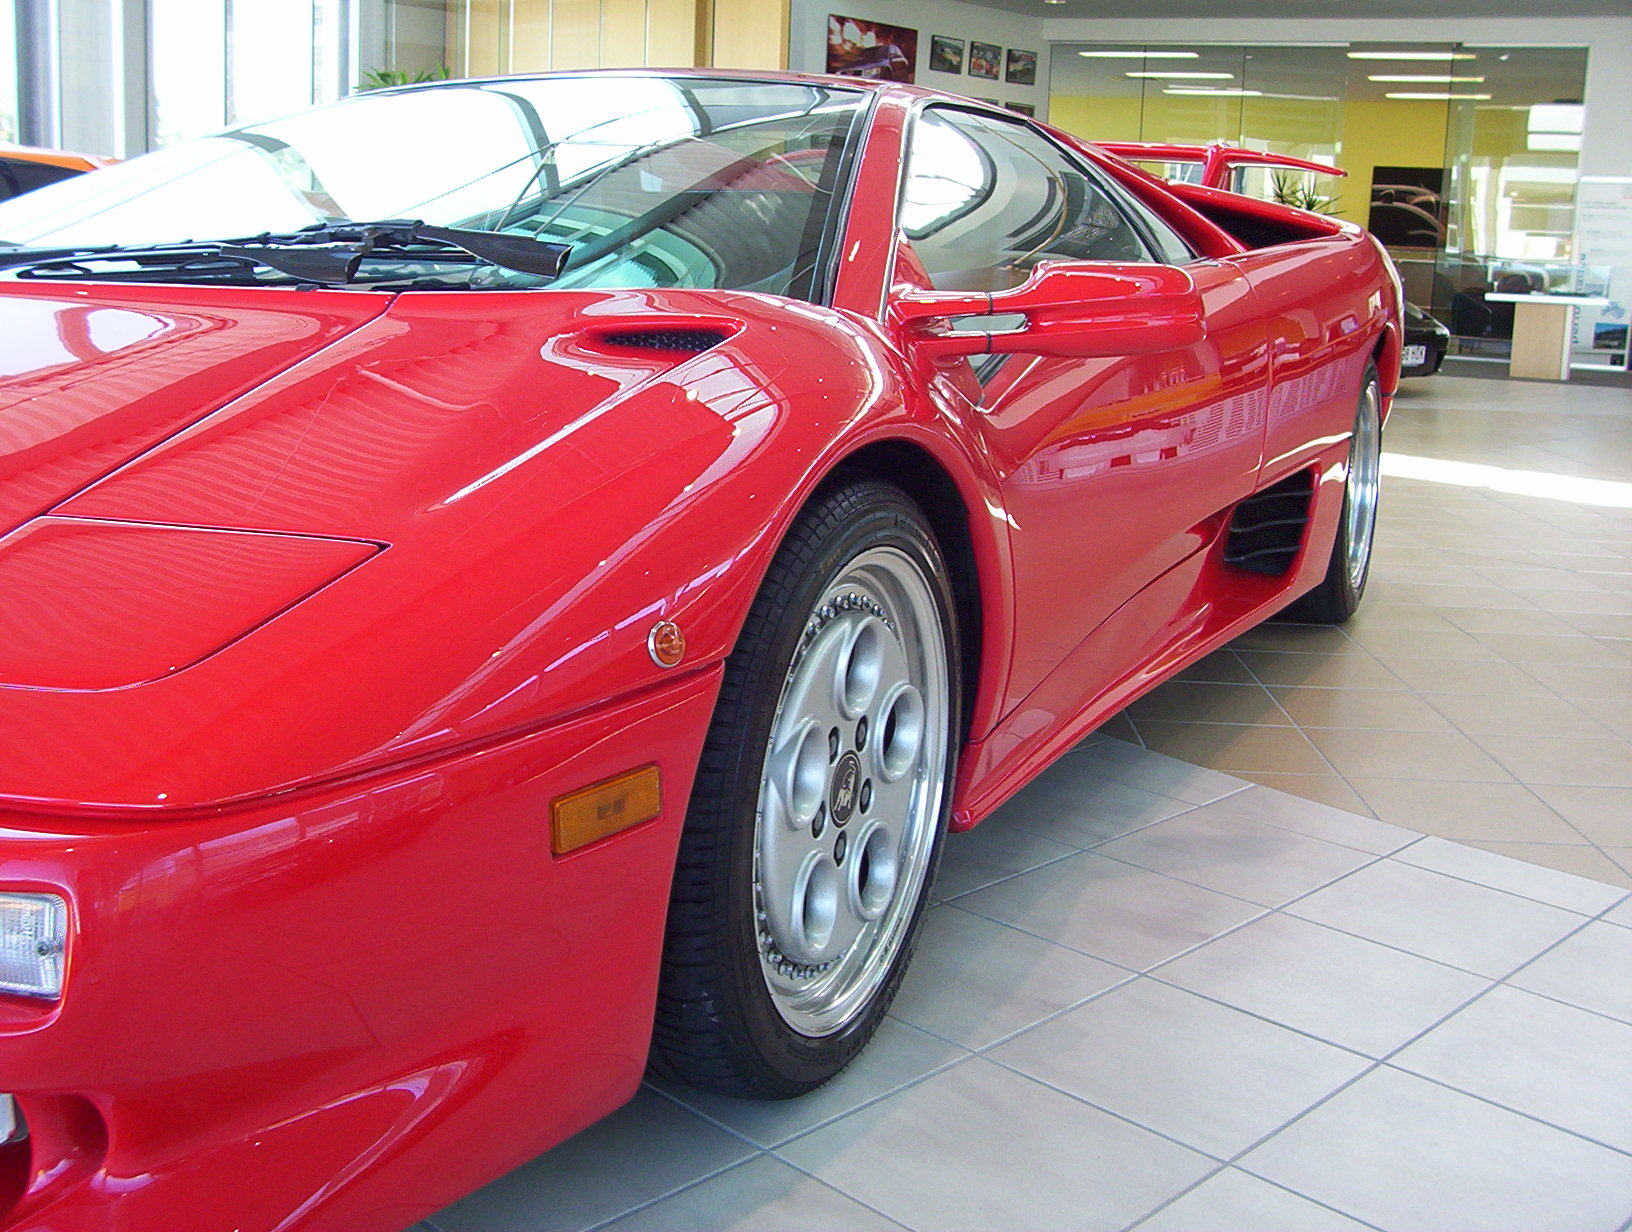 Lamborghini Diablo Roadster photo 12977